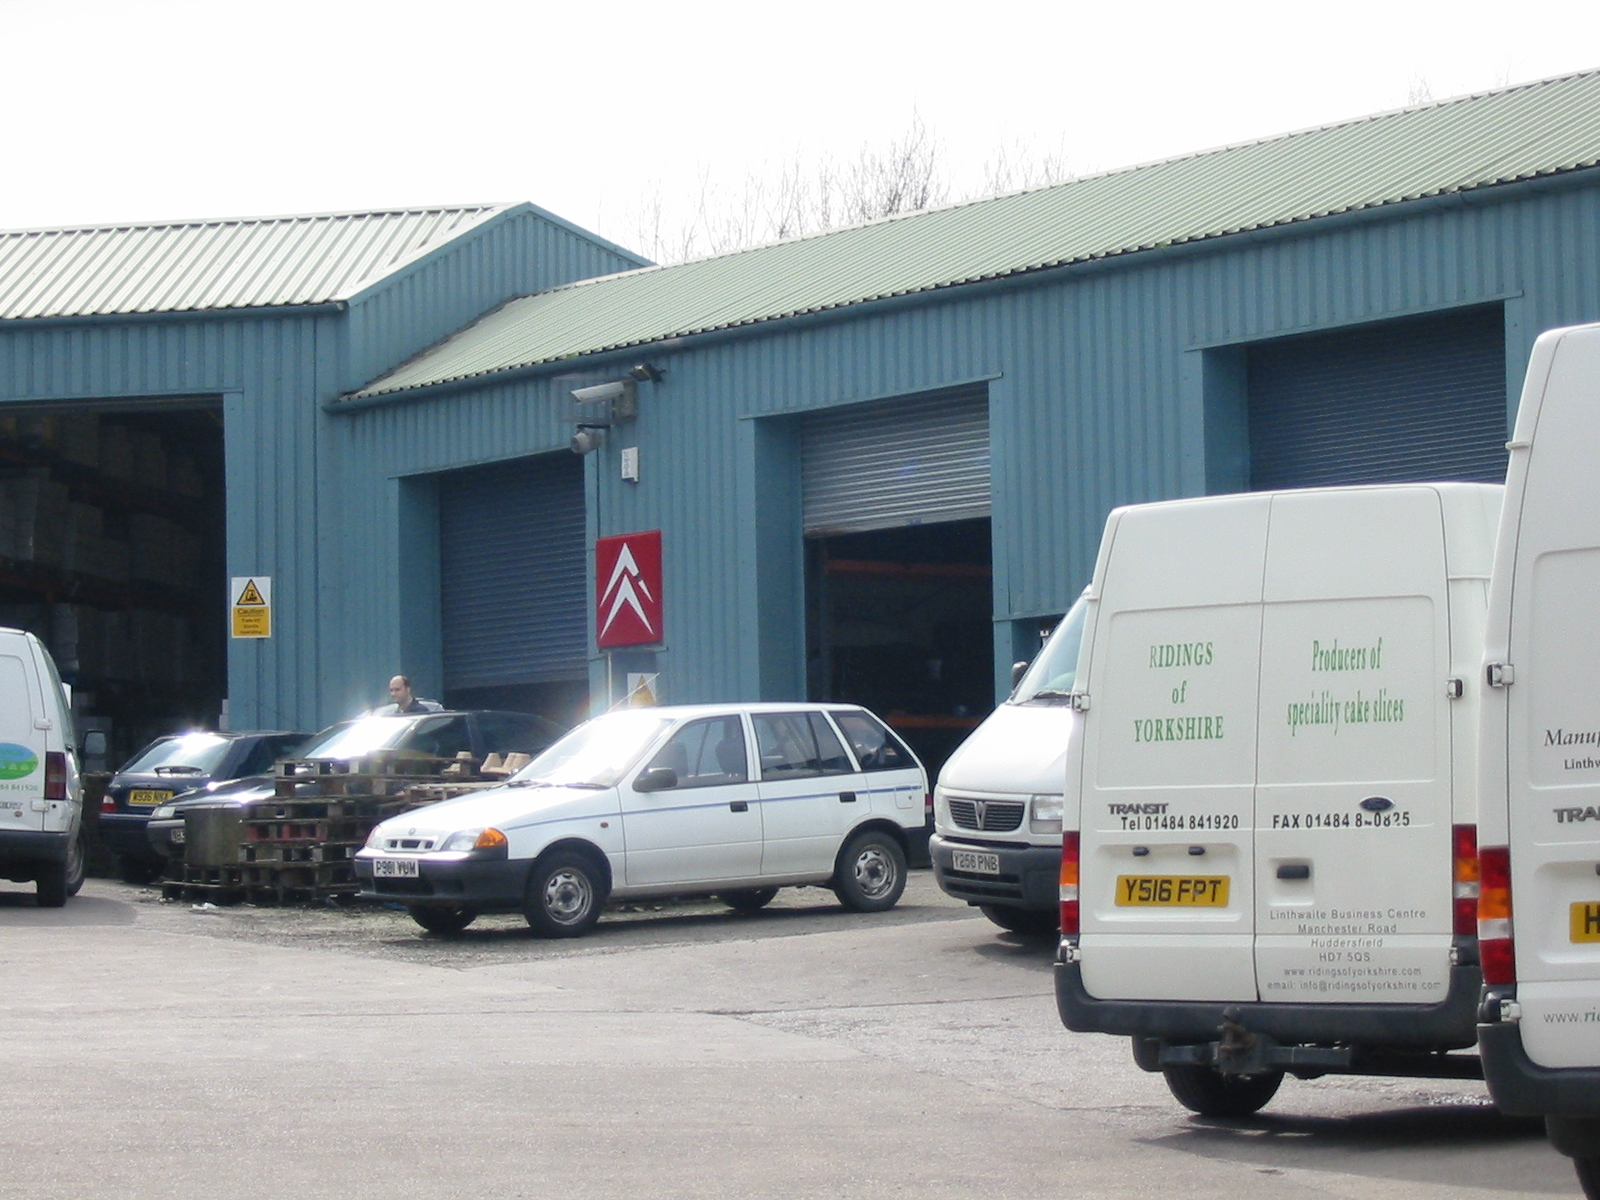 Main Image, Bizspace, Linthwaite Business Centre, Huddersfield, Yorkshire, HD7